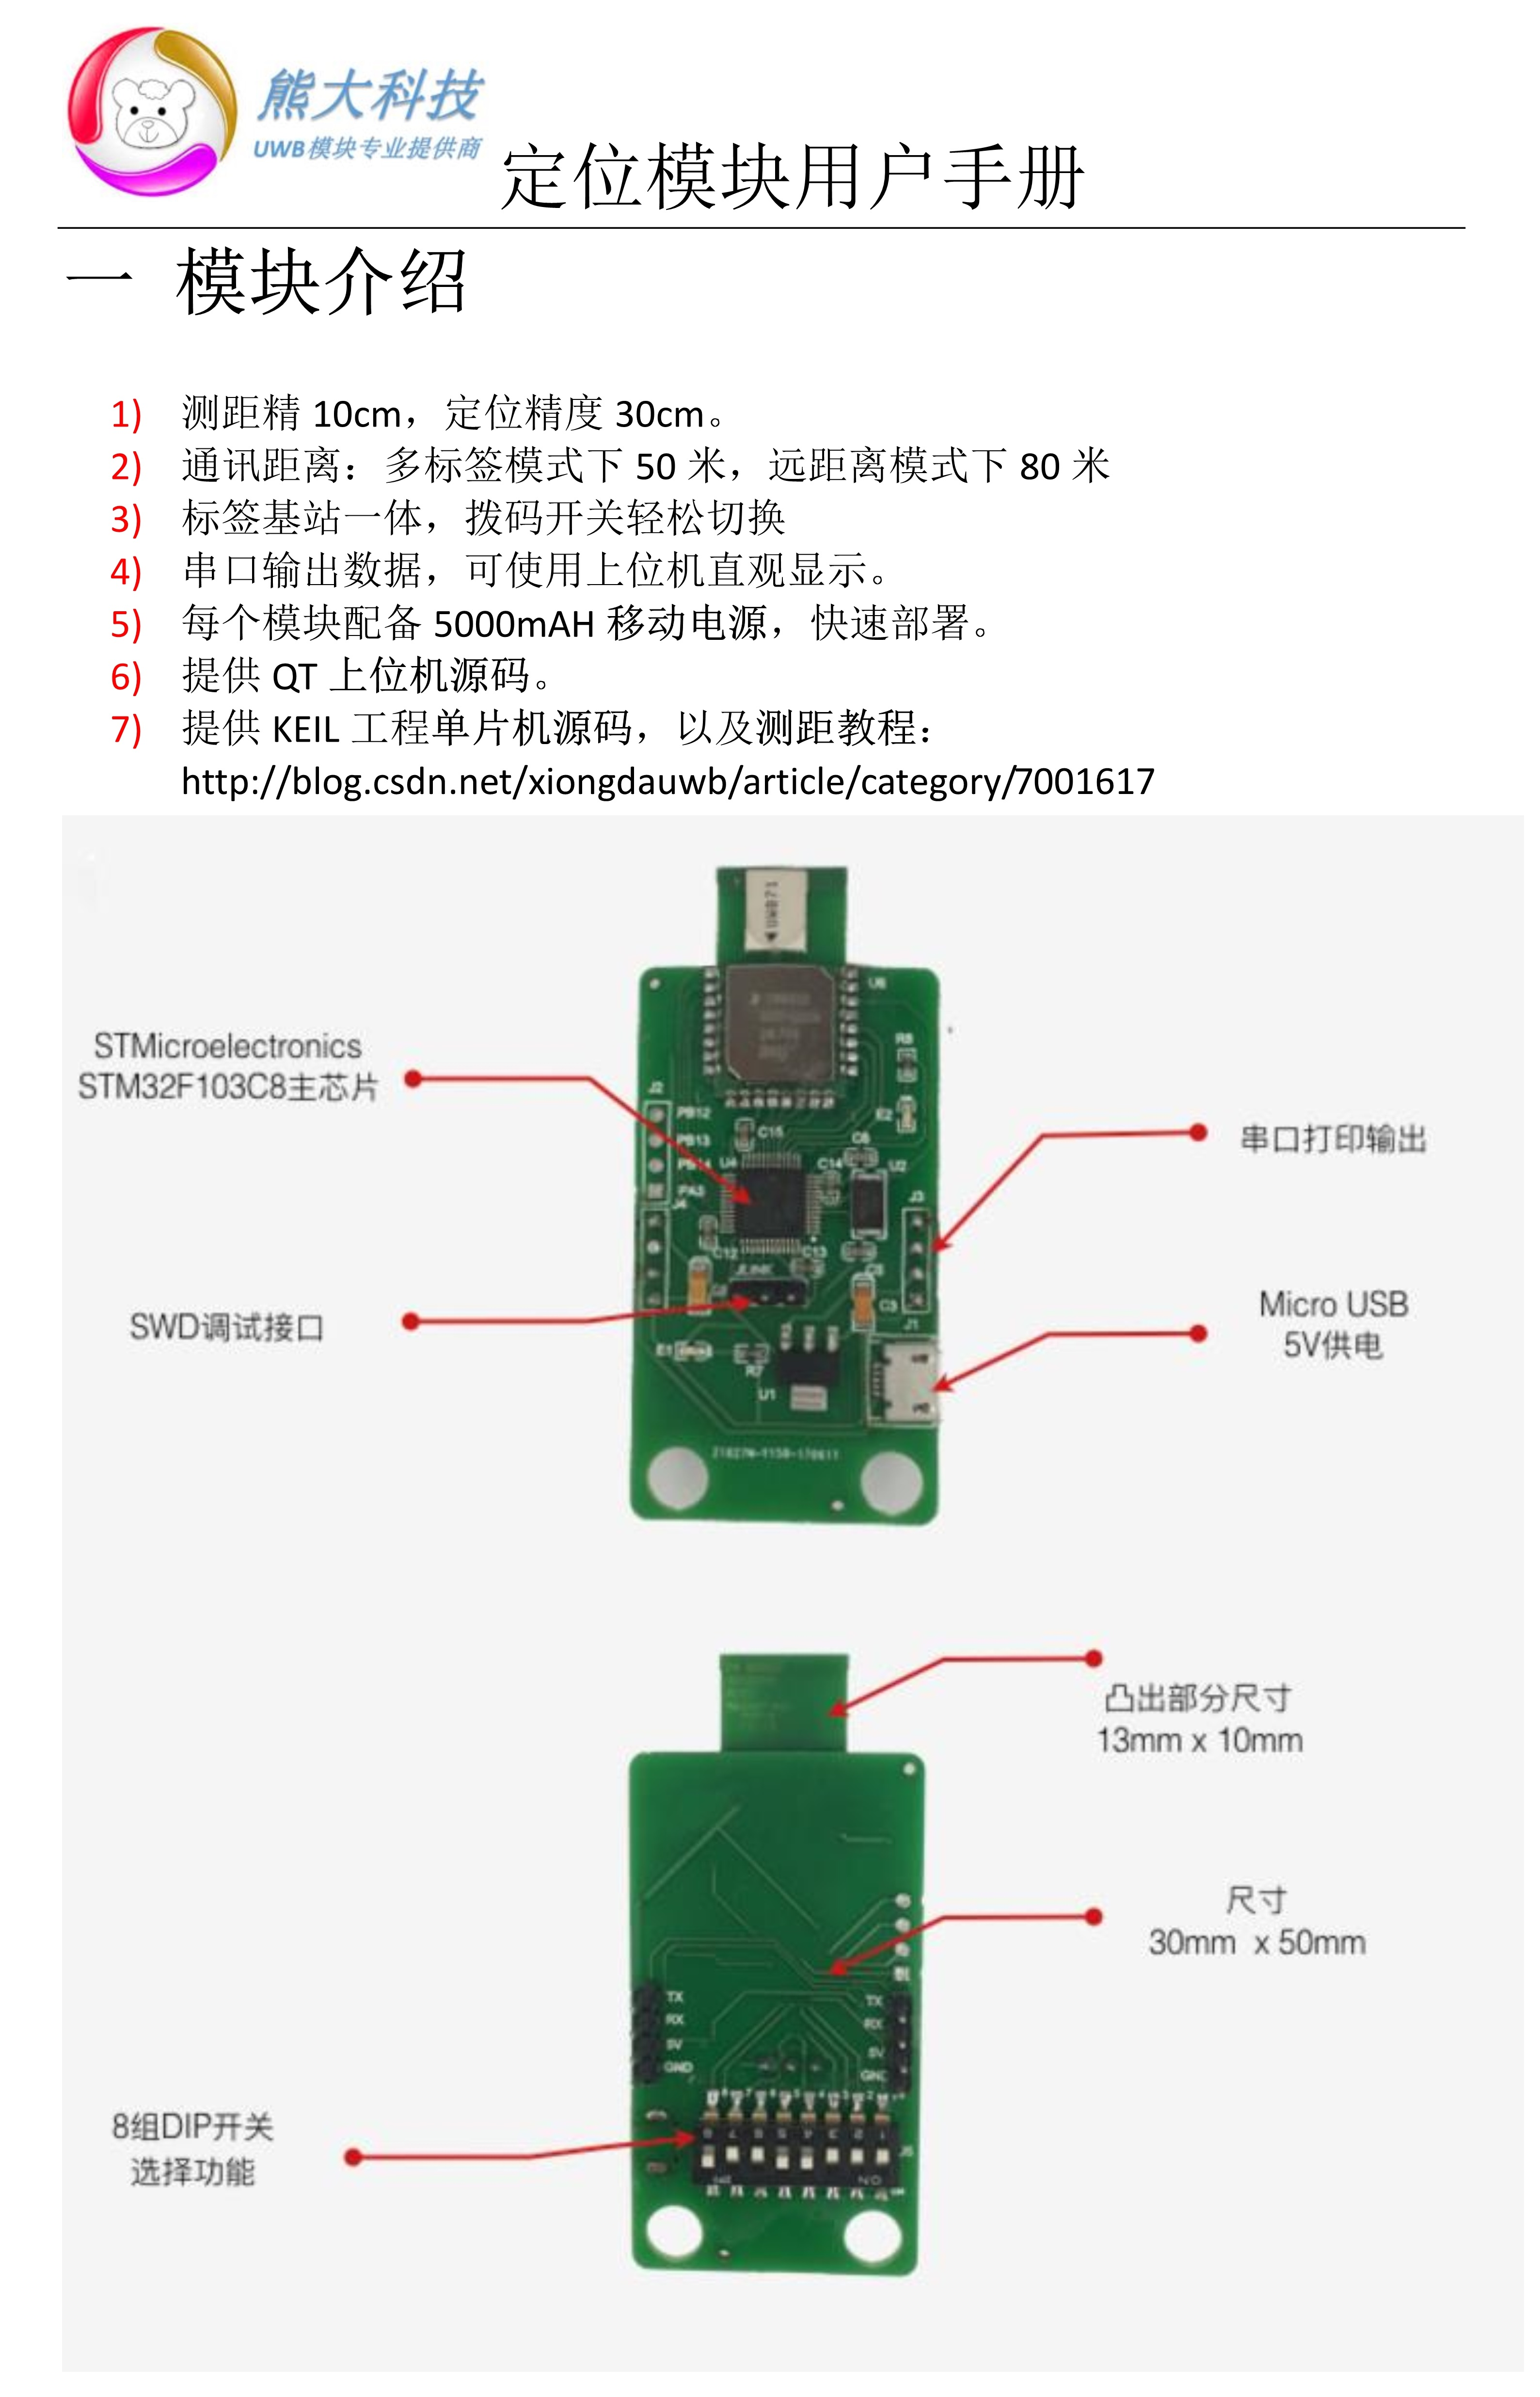 US $147 54 5% OFF Dwm1000 positioning module DW1000 UWB positioning module  for ultra wideband indoor positioning module-in Counters from Tools on